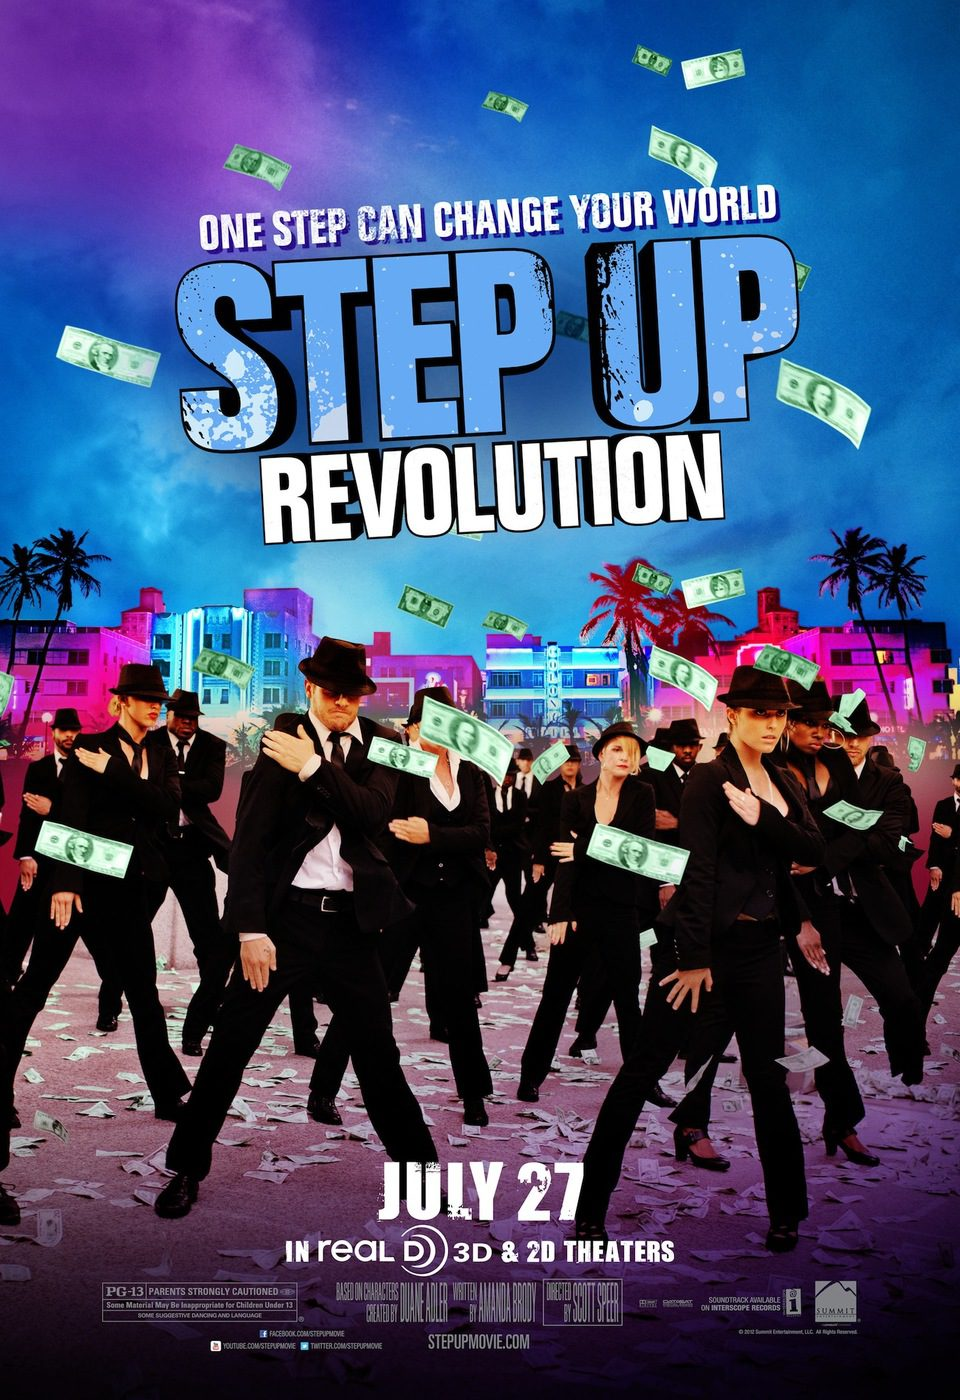 Cartel EEUU #3 de 'Step Up: Revolution'